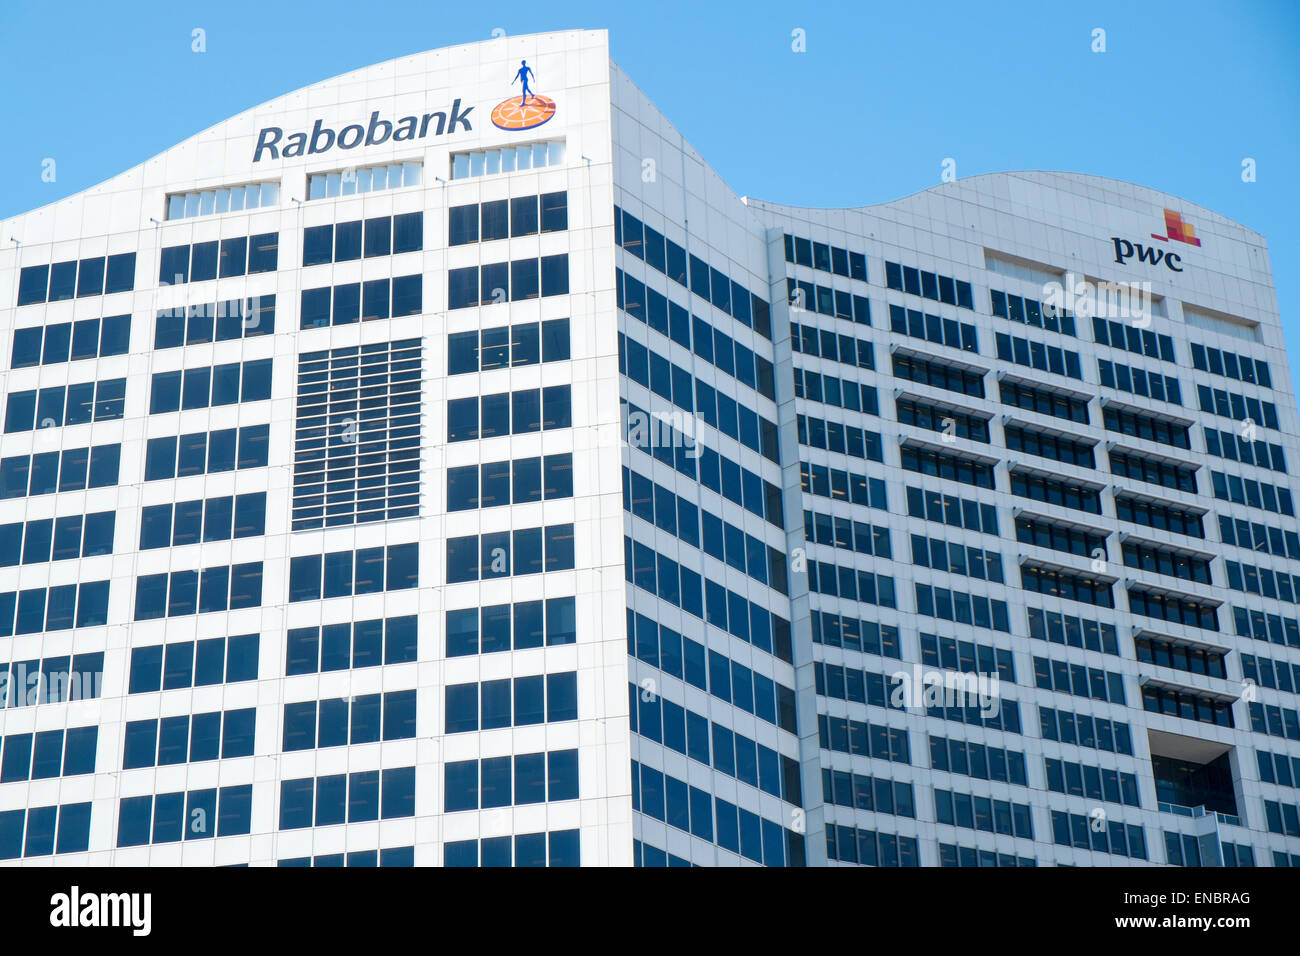 Rabobank and Pwc pricewaterhouse coopers offices in Darling harbour,sydney - Stock Image